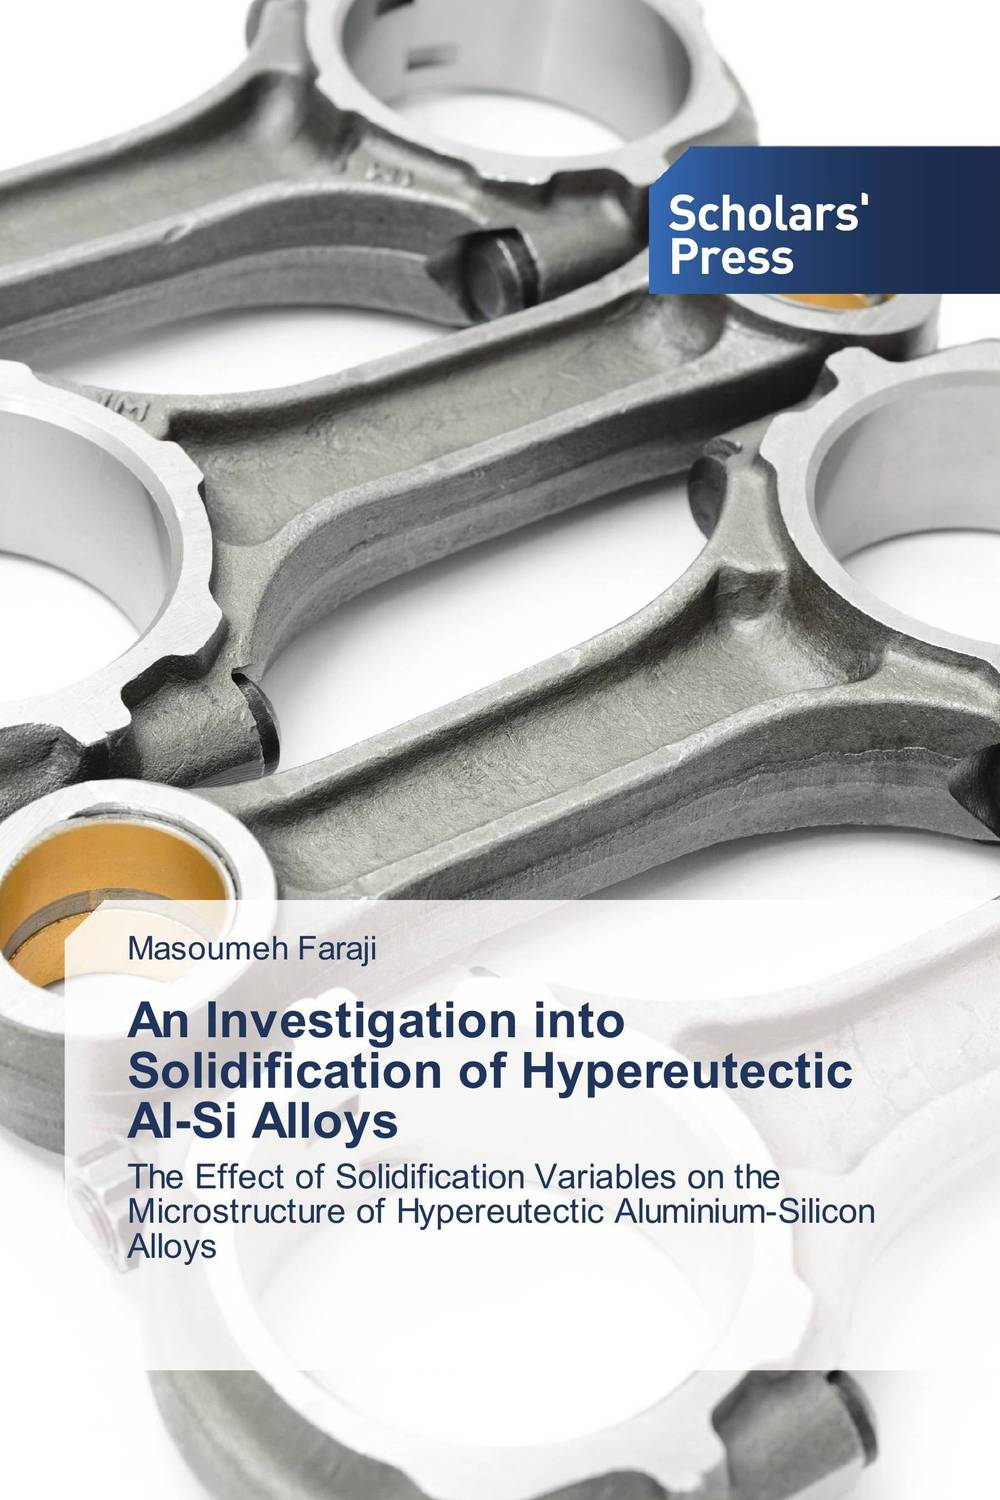 An Investigation into Solidification of Hypereutectic Al-Si Alloys dr david m mburu prof mary w ndungu and prof ahmed hassanali virulence and repellency of fungi on macrotermes and mediating signals